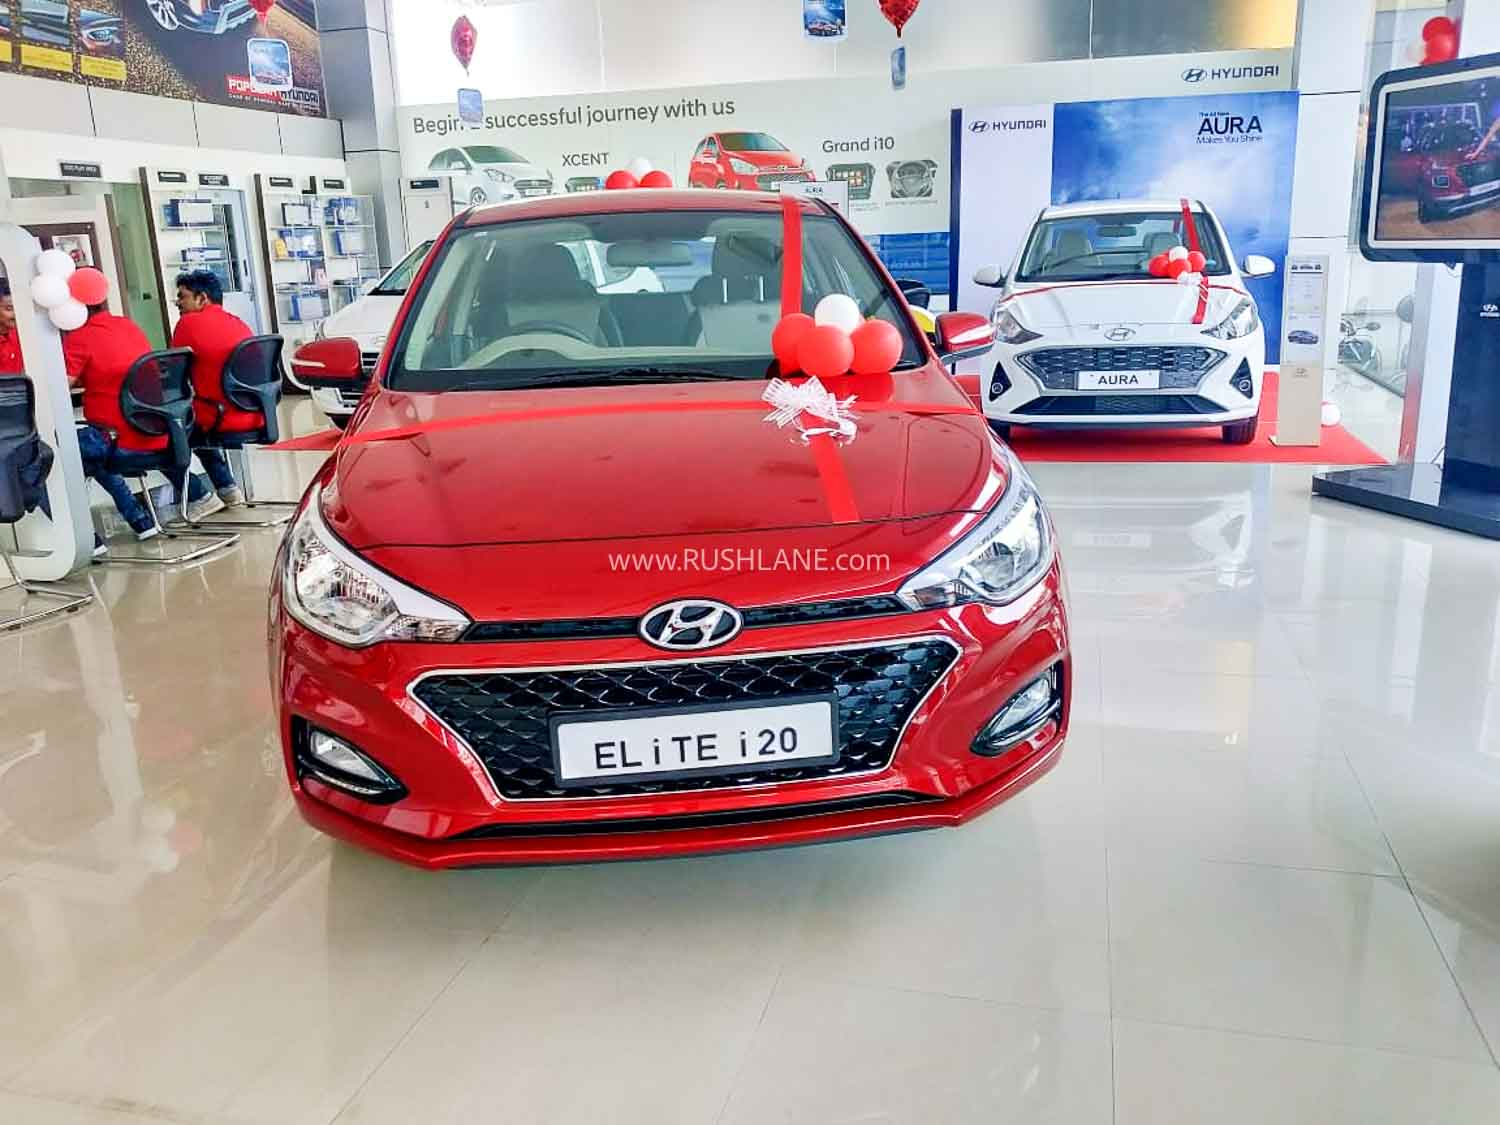 Hyundai I20 Bs6 Vs Bs4 Prices Delivery Start Diesel I20 Discontinued